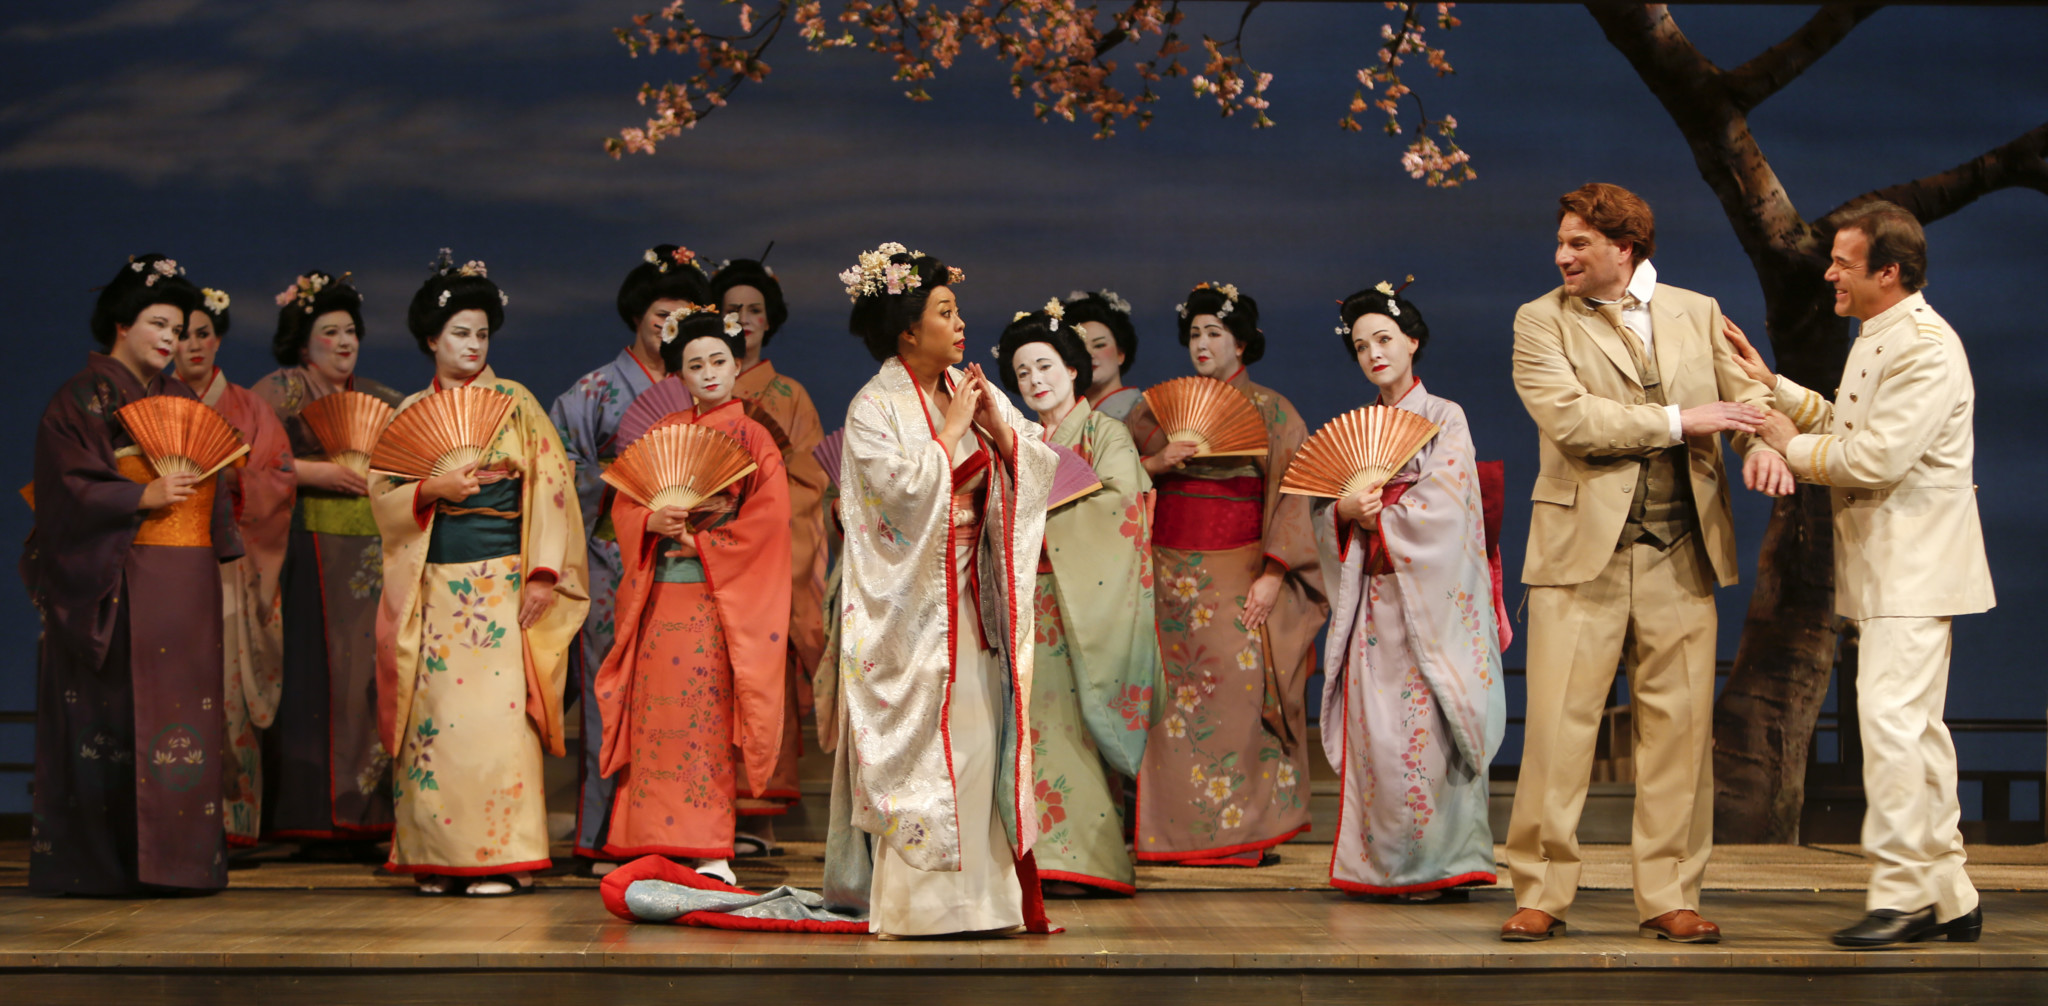 Madama Butterfly – Stunning Performances Moved Me to Tears